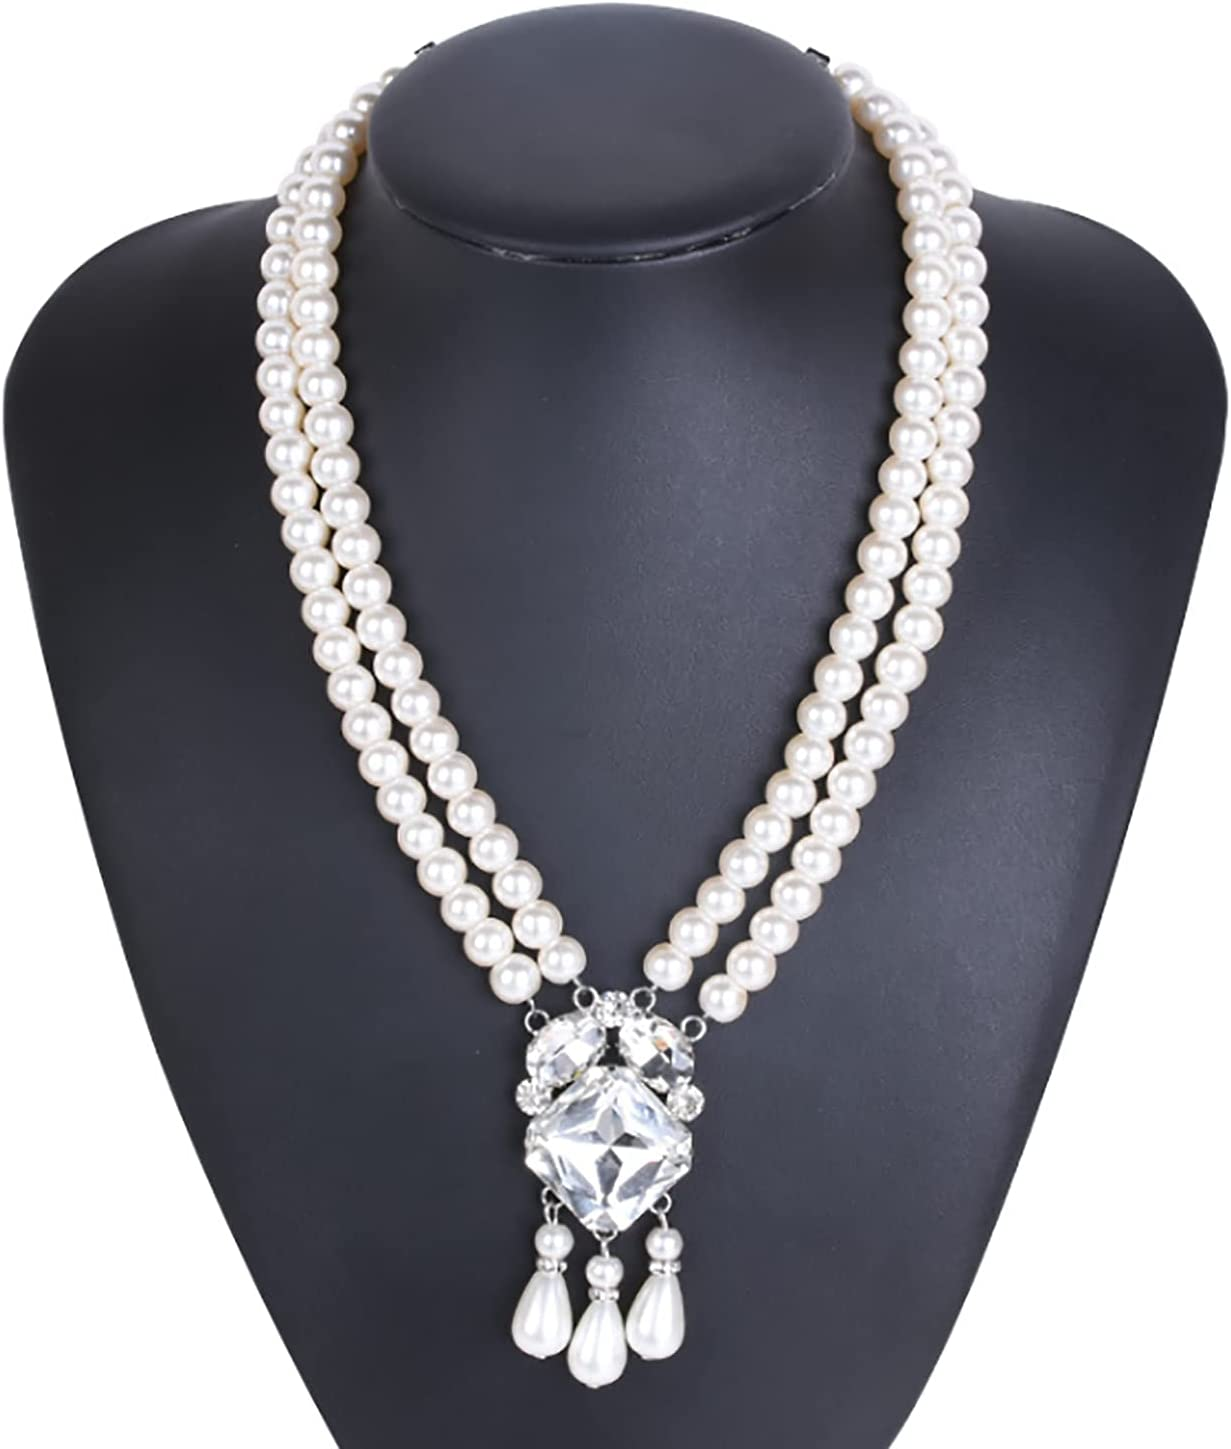 NC 20s Multi Strand Pearl Bridal Choker Necklace for Wedding Party Jewelry 20s Flapper Necklace for Party Round